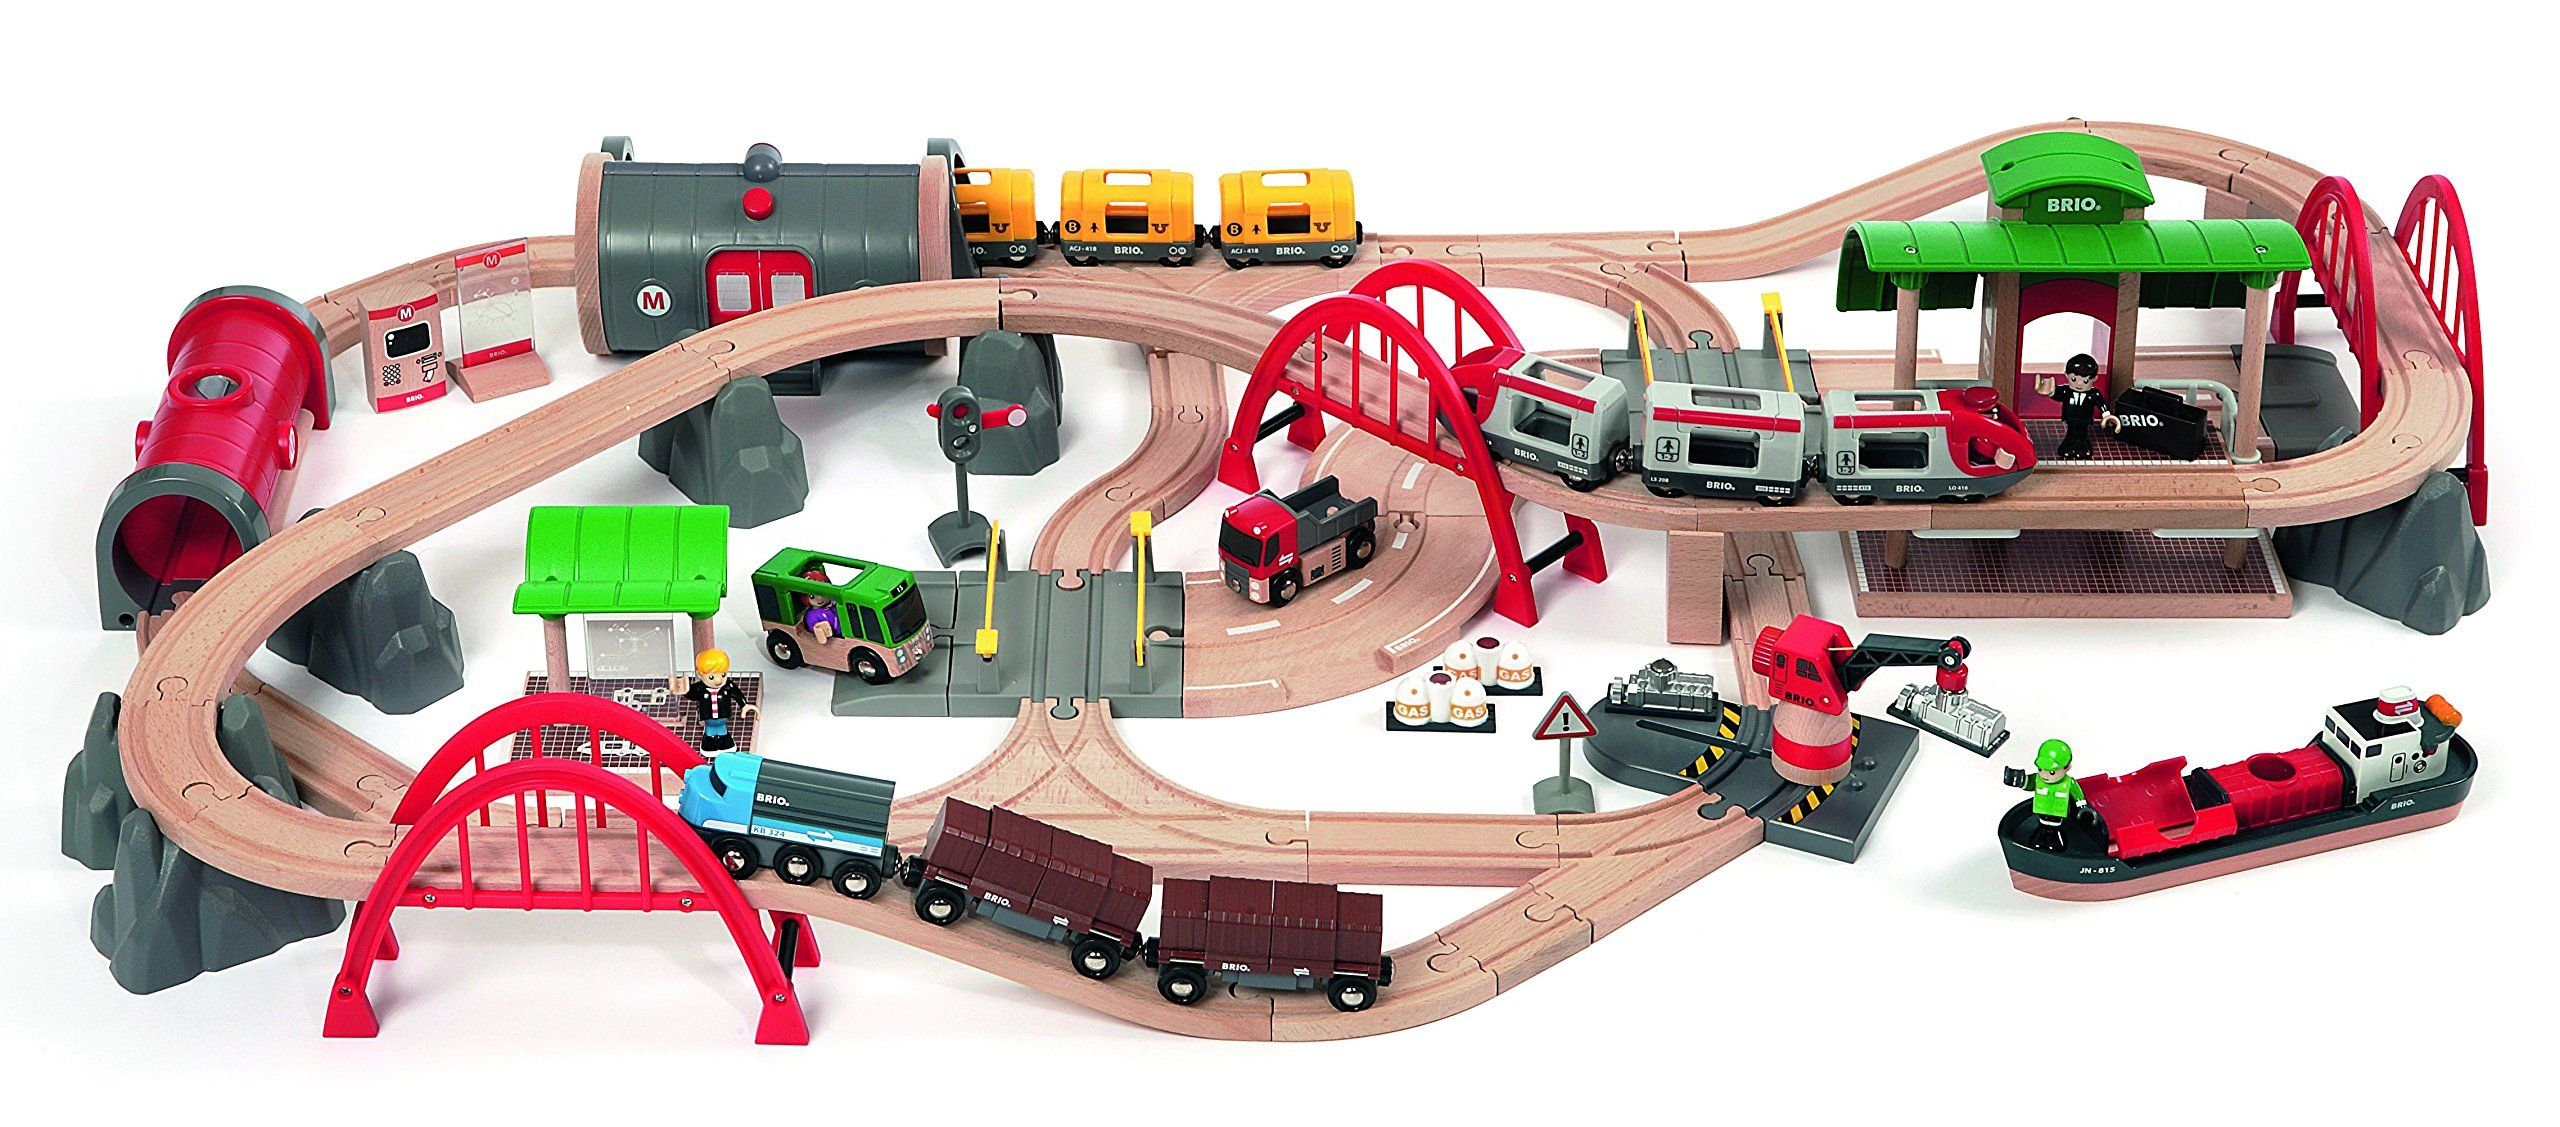 Brio Deluxe Railway Set | Thomas & Brio Wood Train | Pinterest